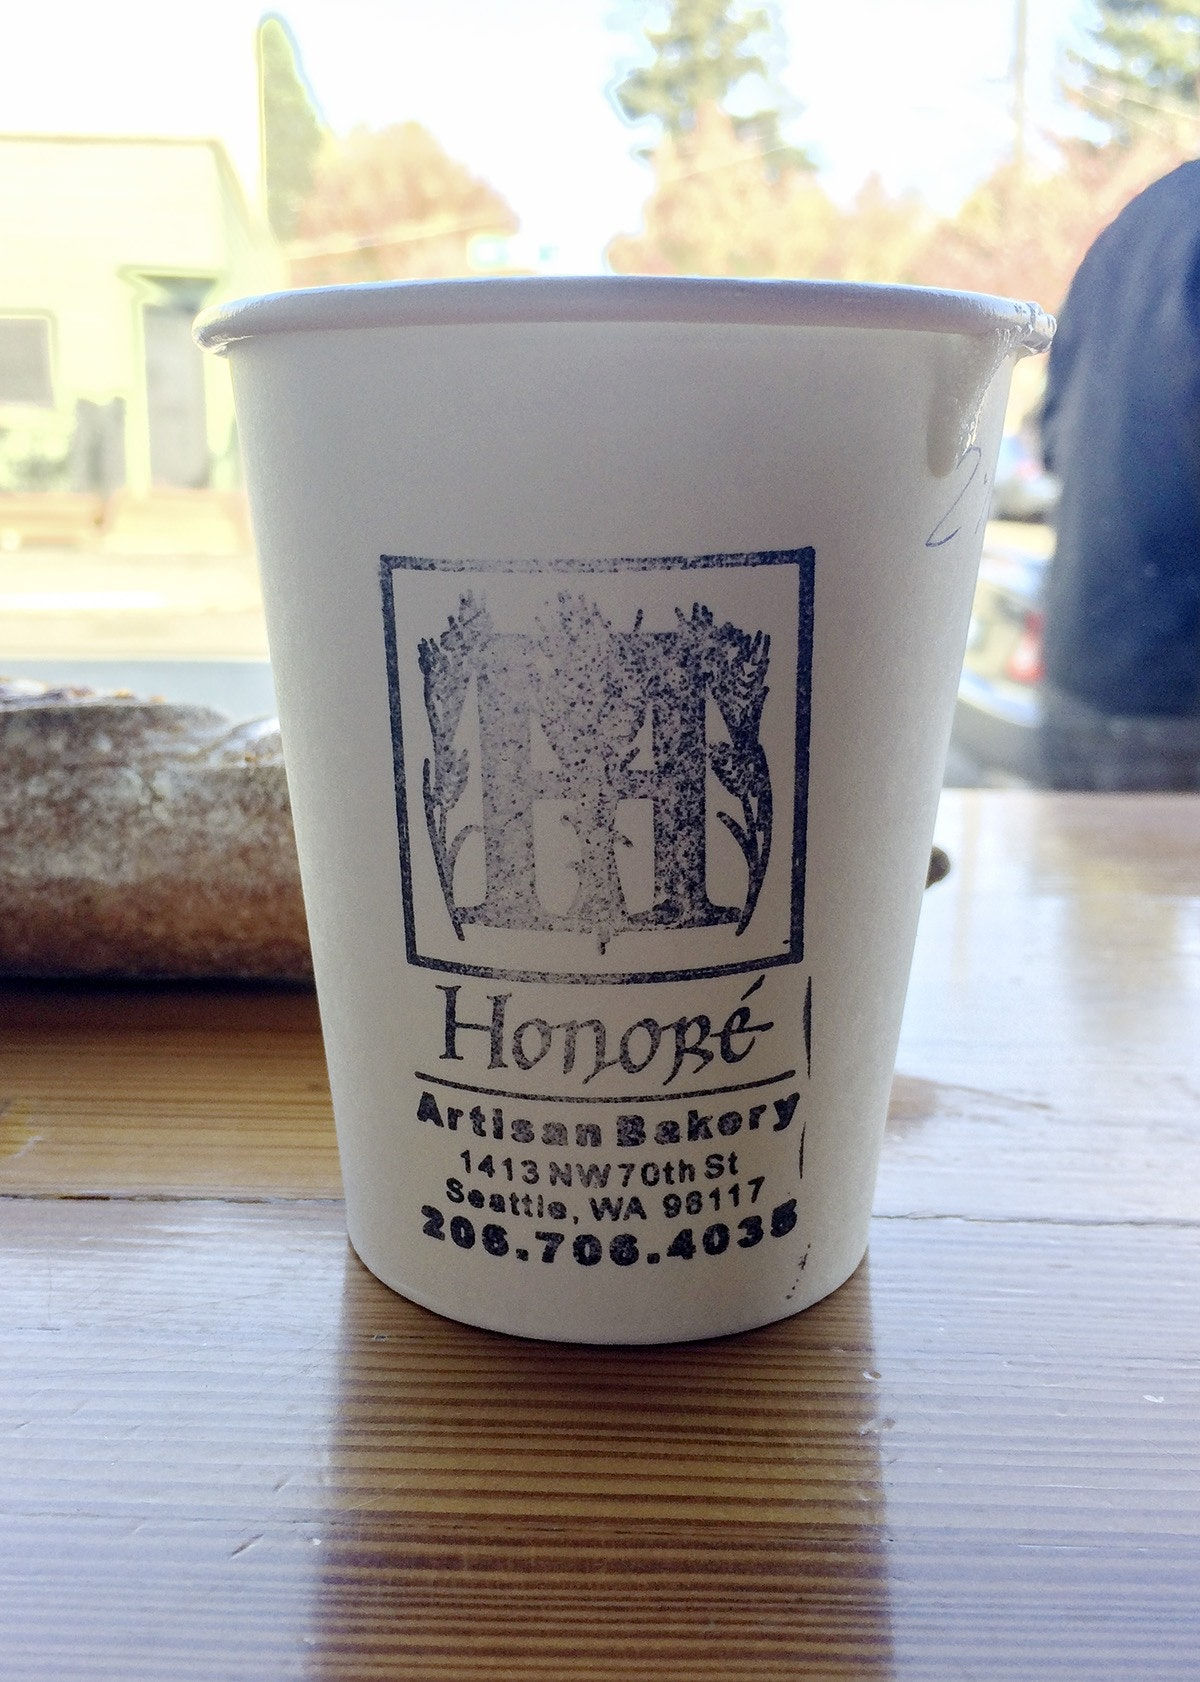 Honore Bakery